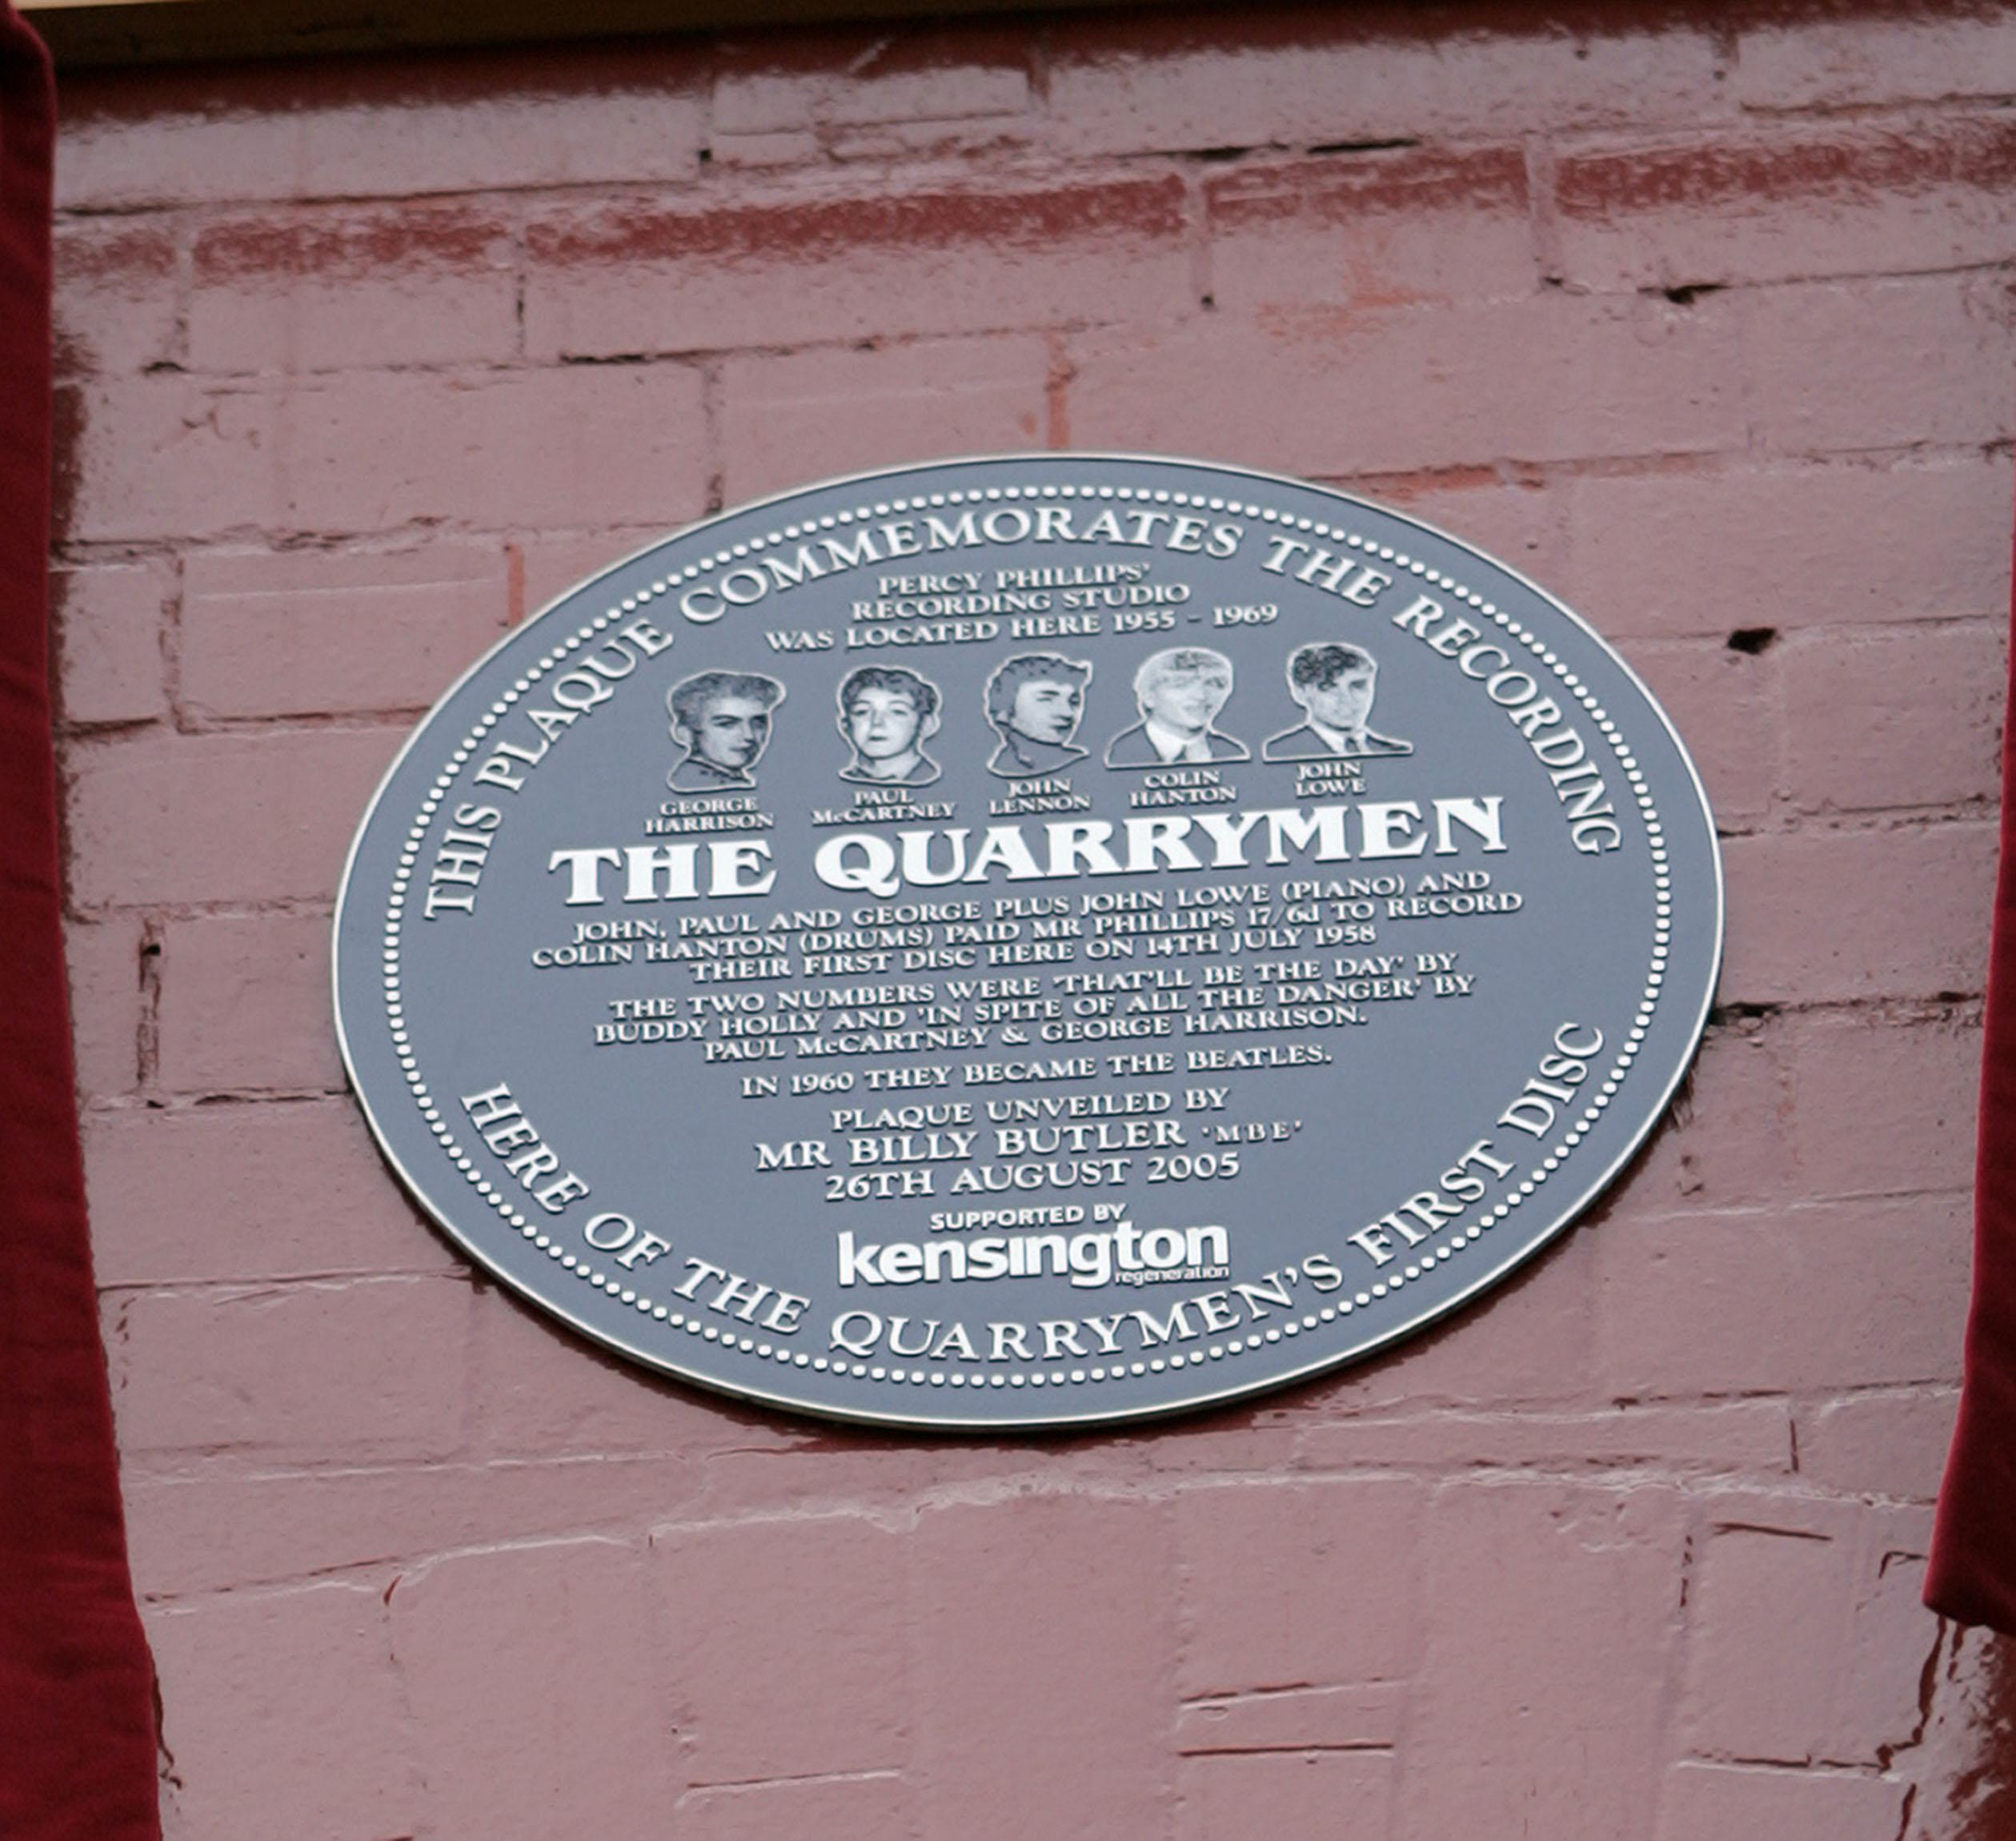 A plaque celebrating The Quarrymen